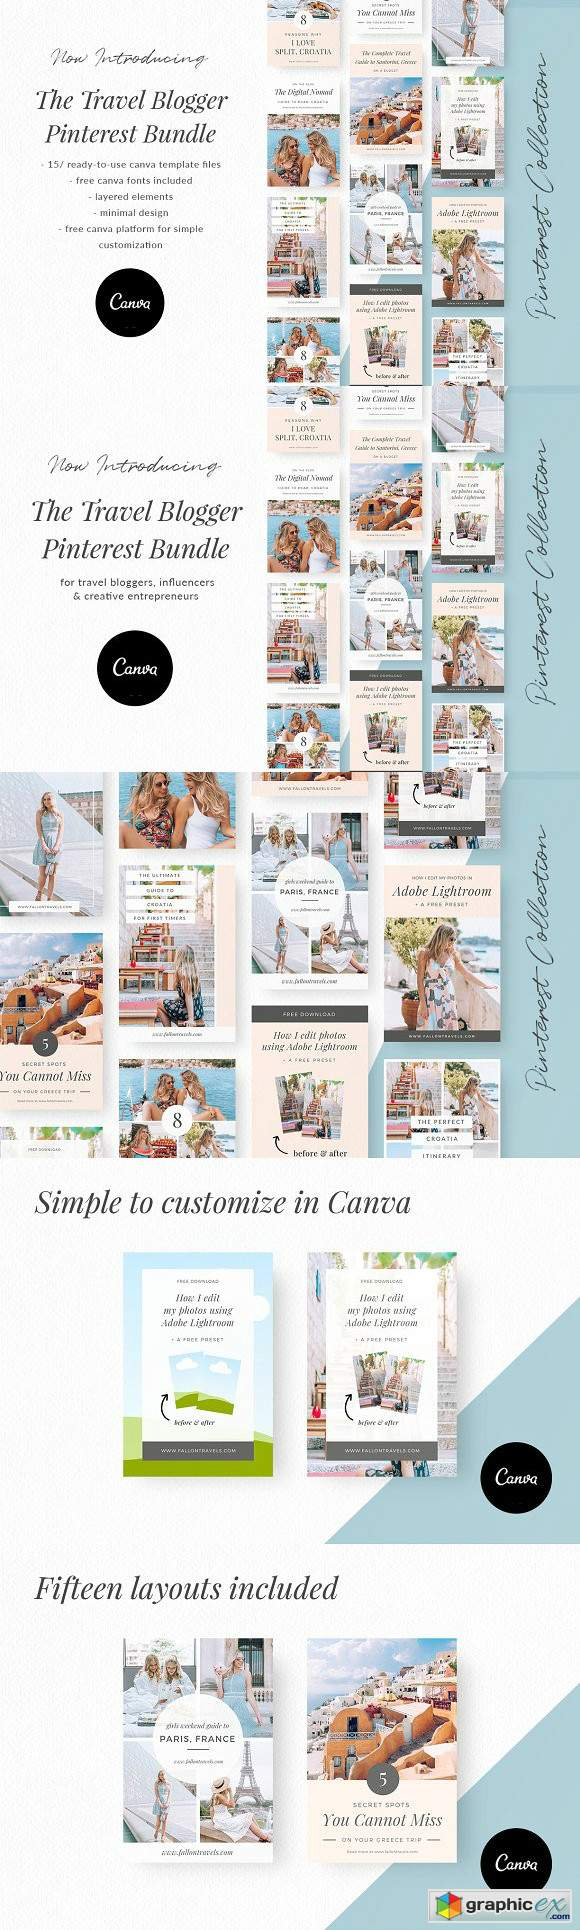 Travel Blogger Pinterest Bundle